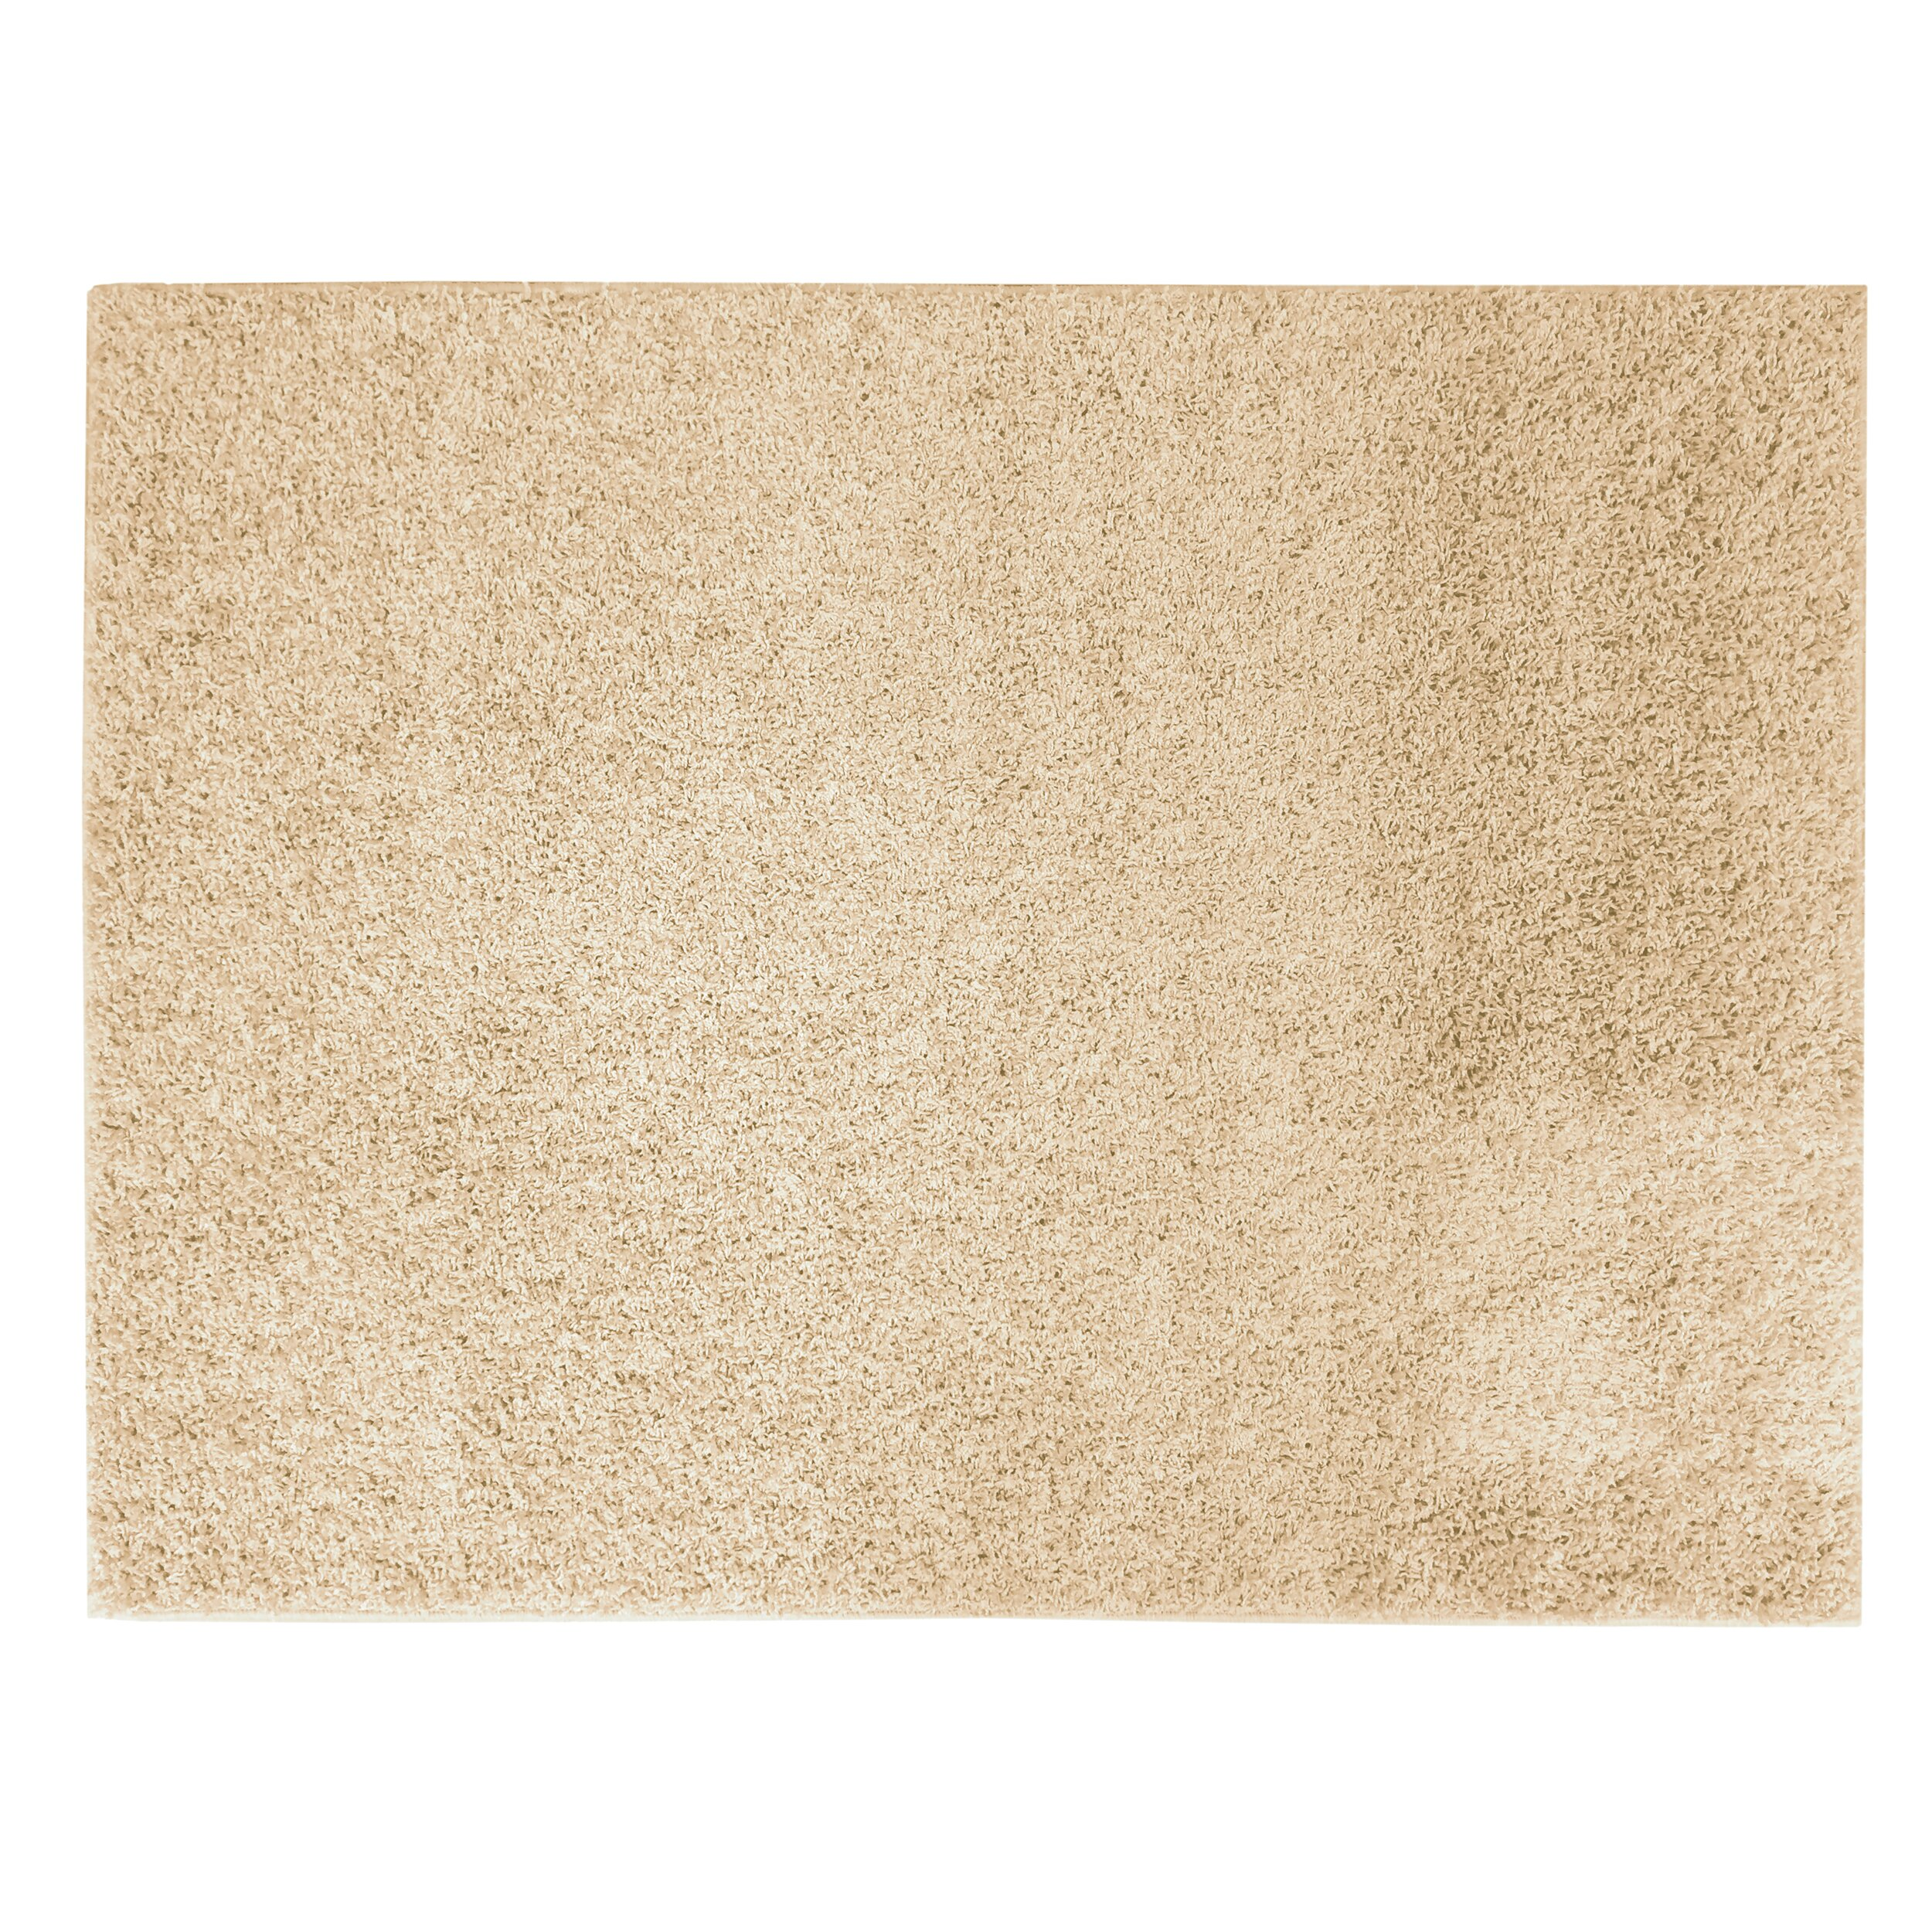 Apache mills soft settings cream shag area rug reviews for Soft area rugs